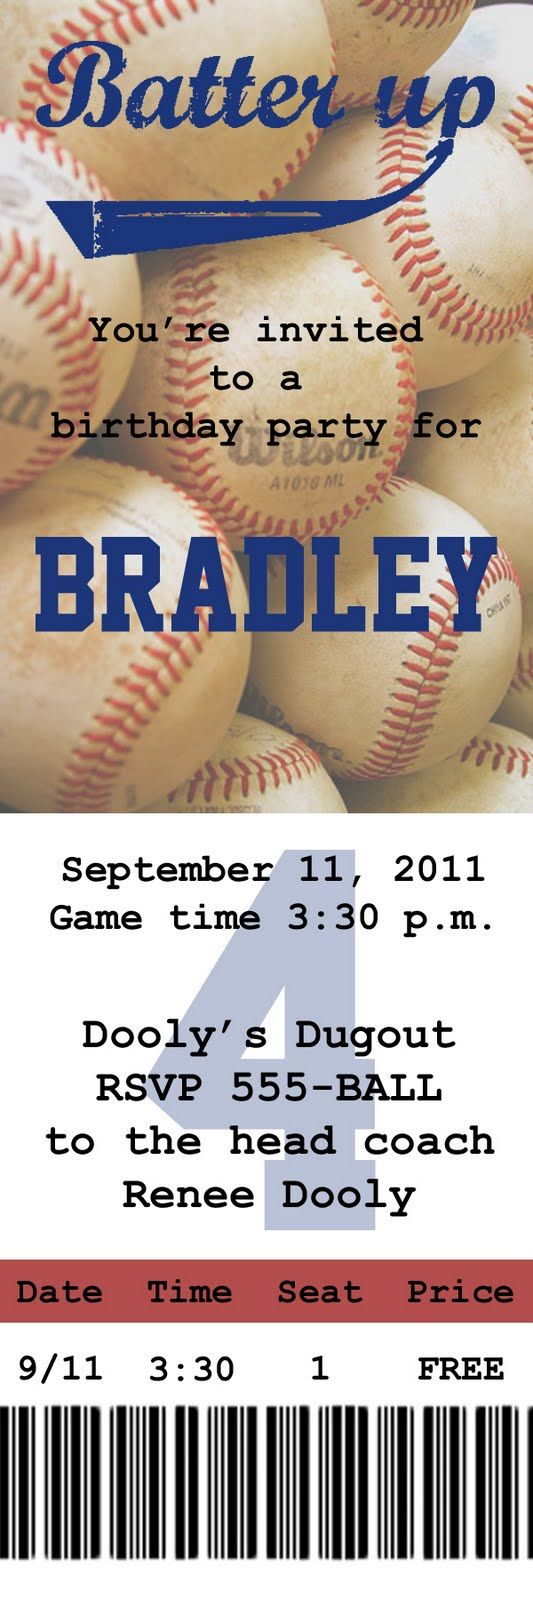 I love the idea of an invite like this to a baseball game b'day party or bachelor/ette